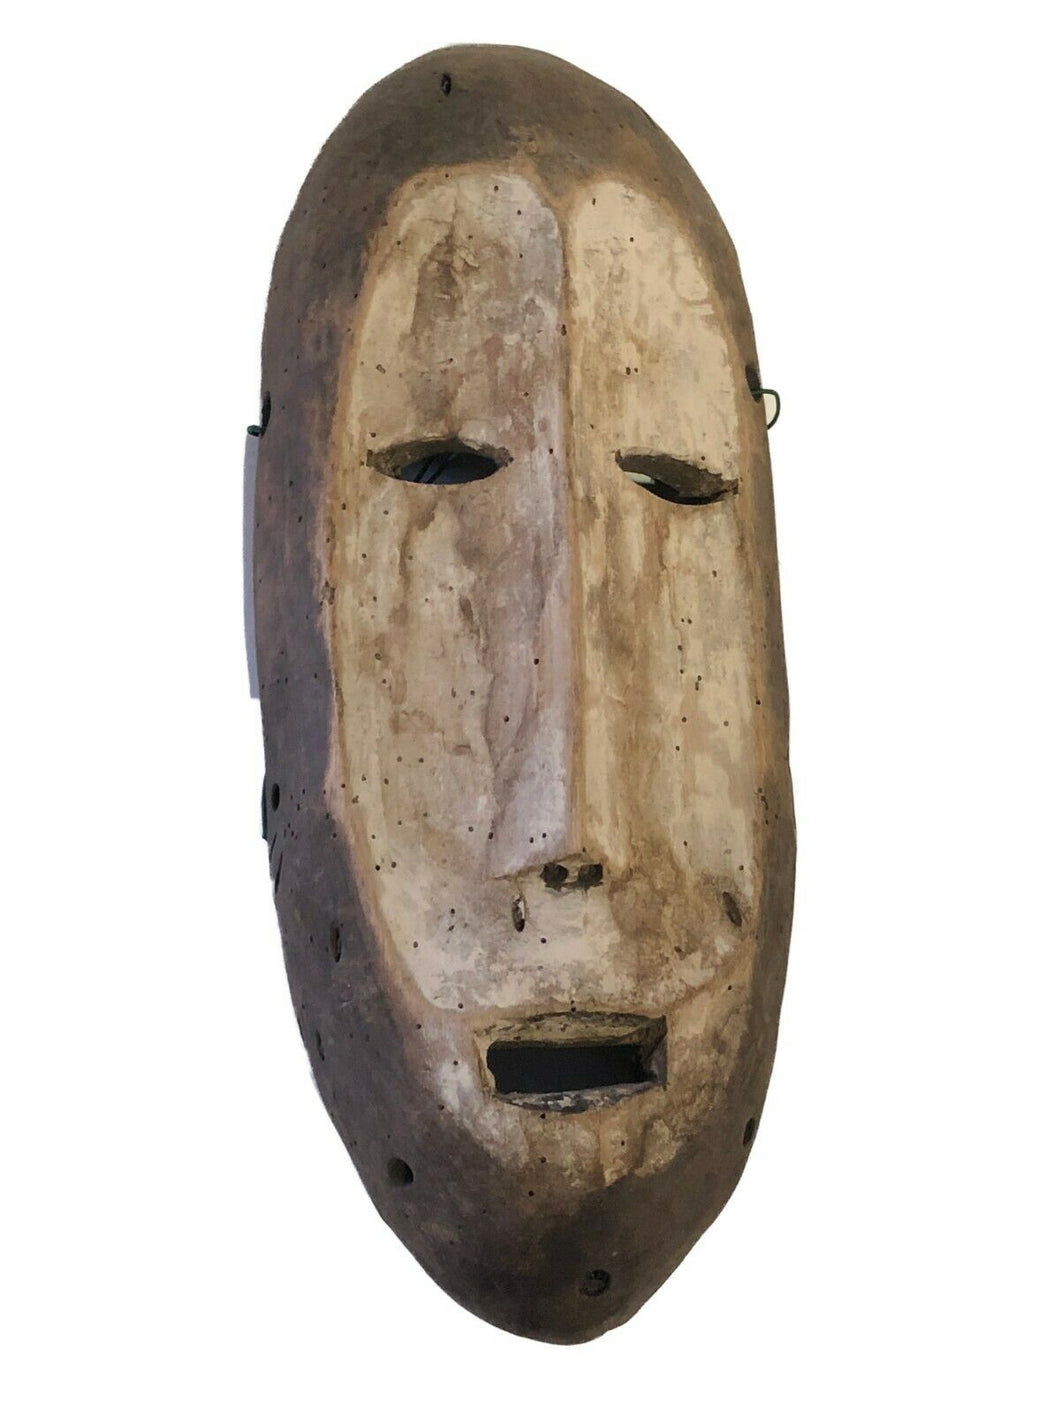 Superb african Lega Democratic Republic of the Congo mask 10.5